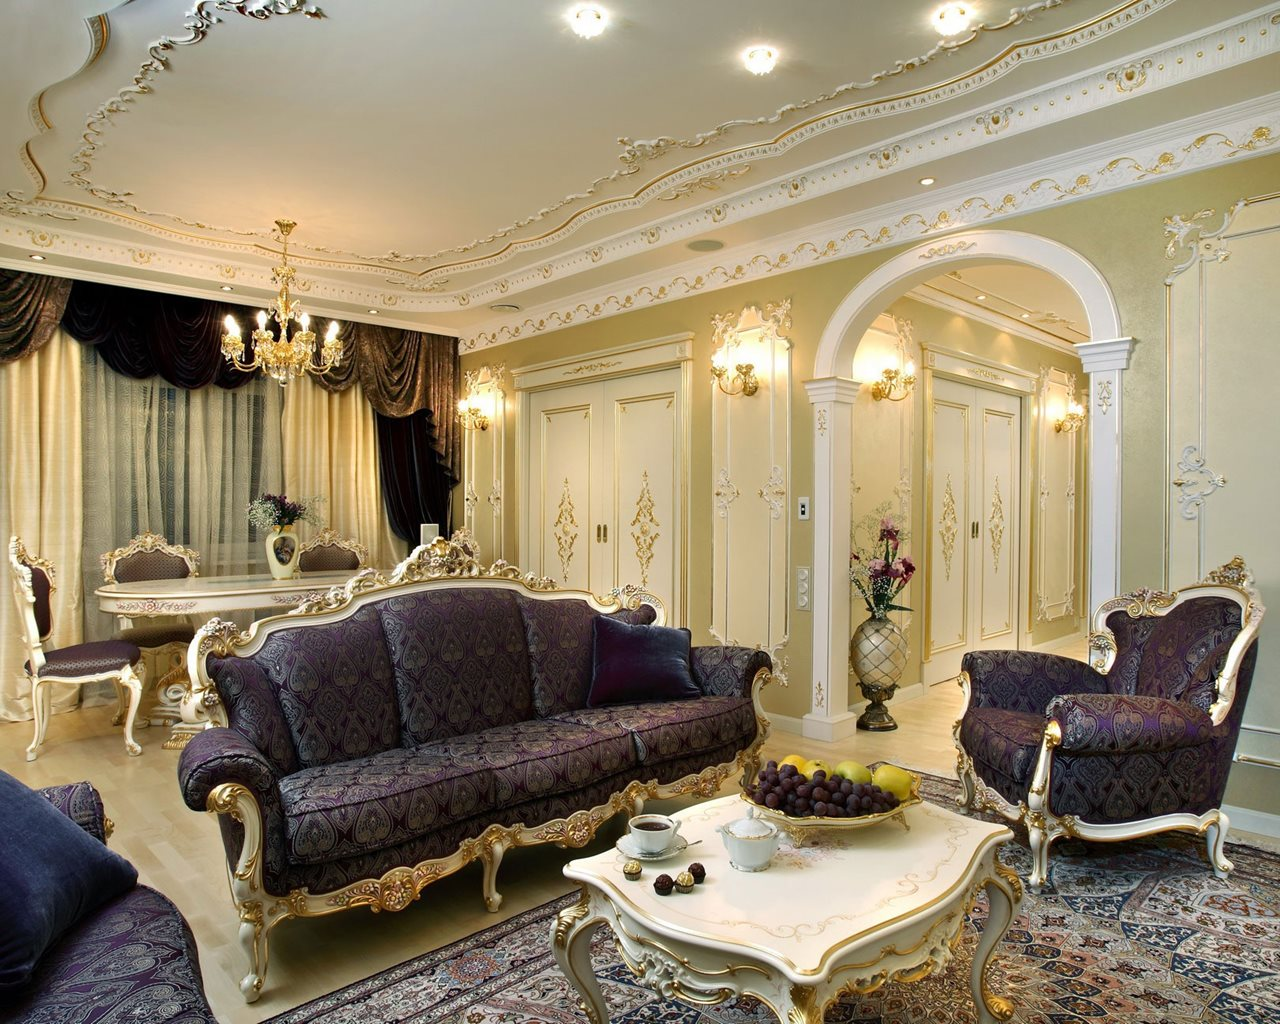 Baroque style interior design ideas for Room interior decoration